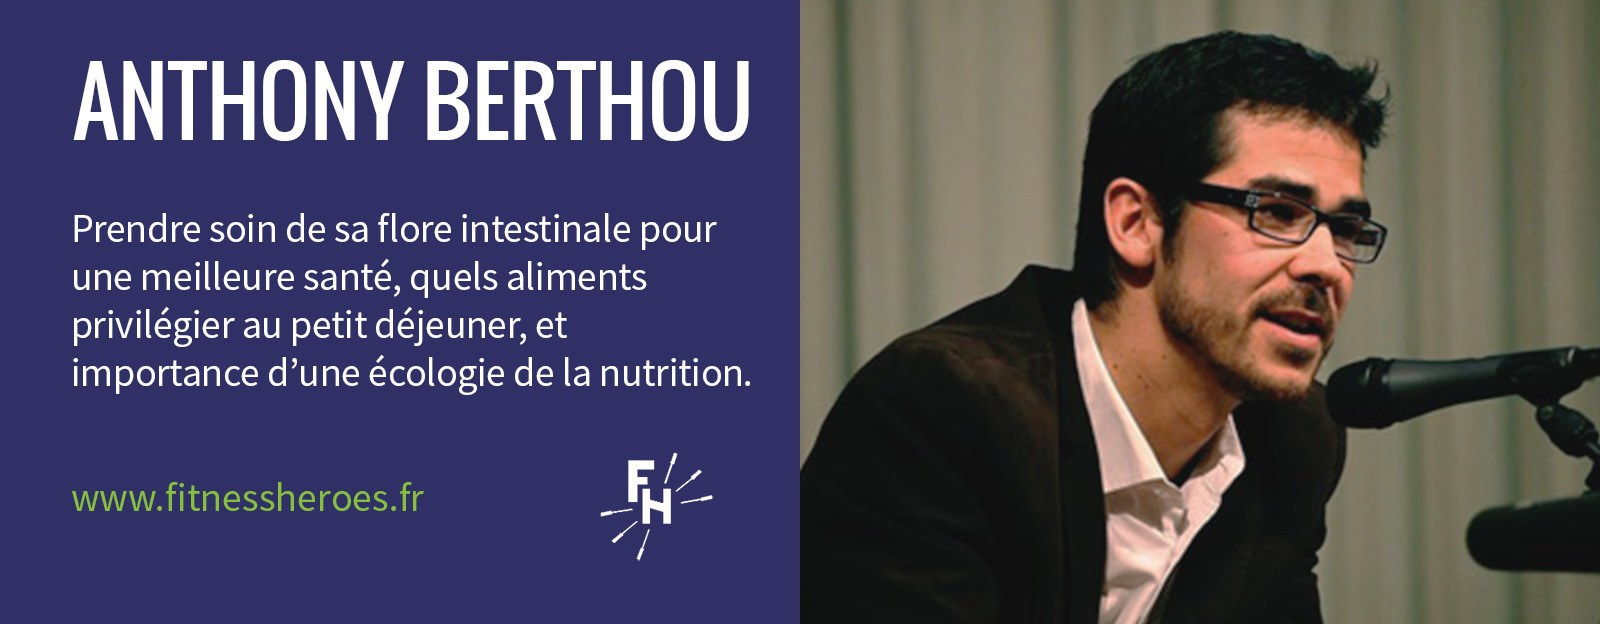 Épisode 02 du Podcast Fitness Heroes avec Anthony Berthou